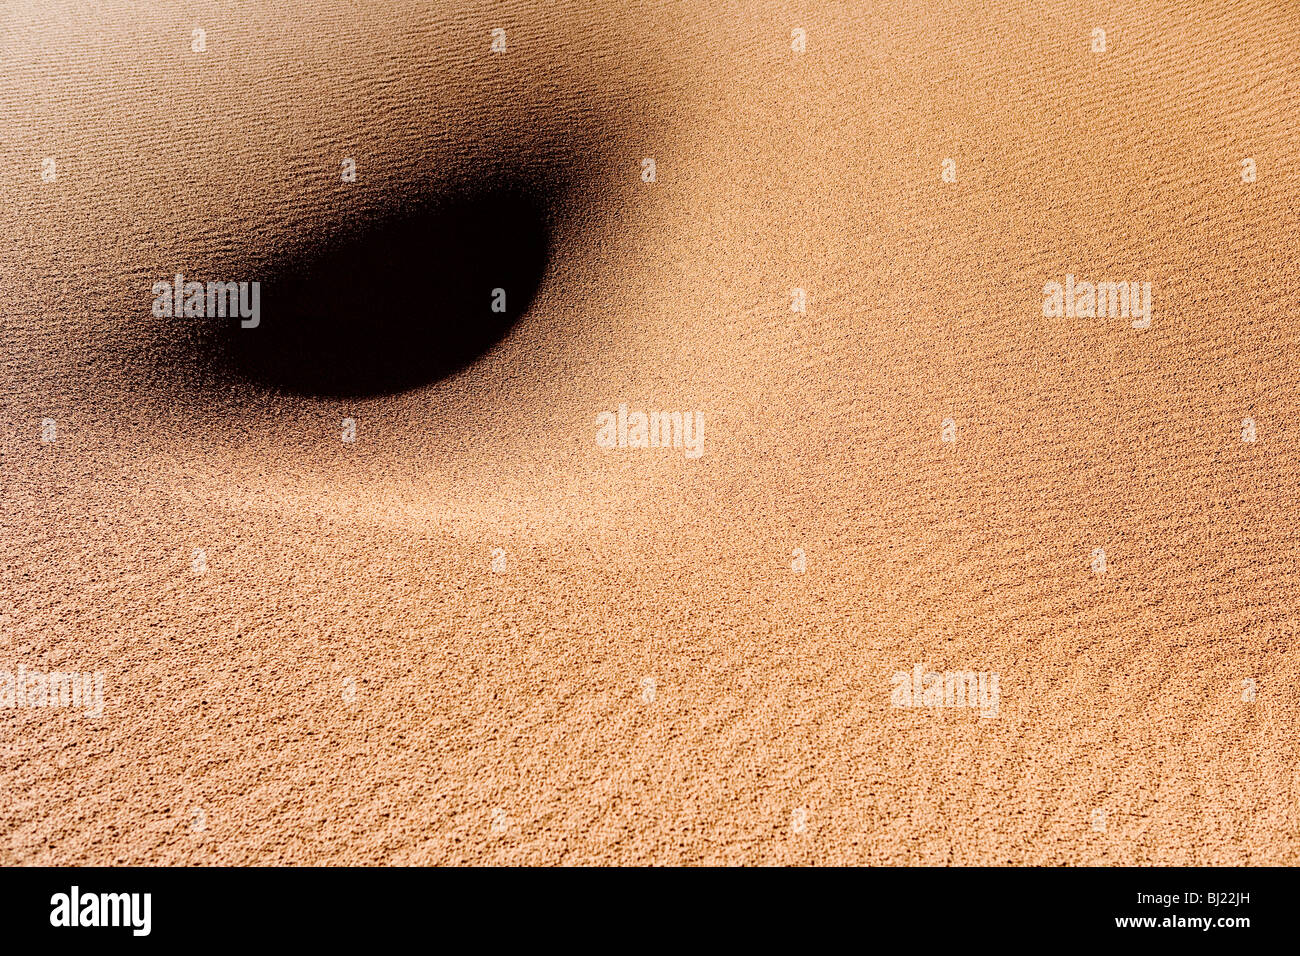 Formation of the sand in the desert - Stock Image